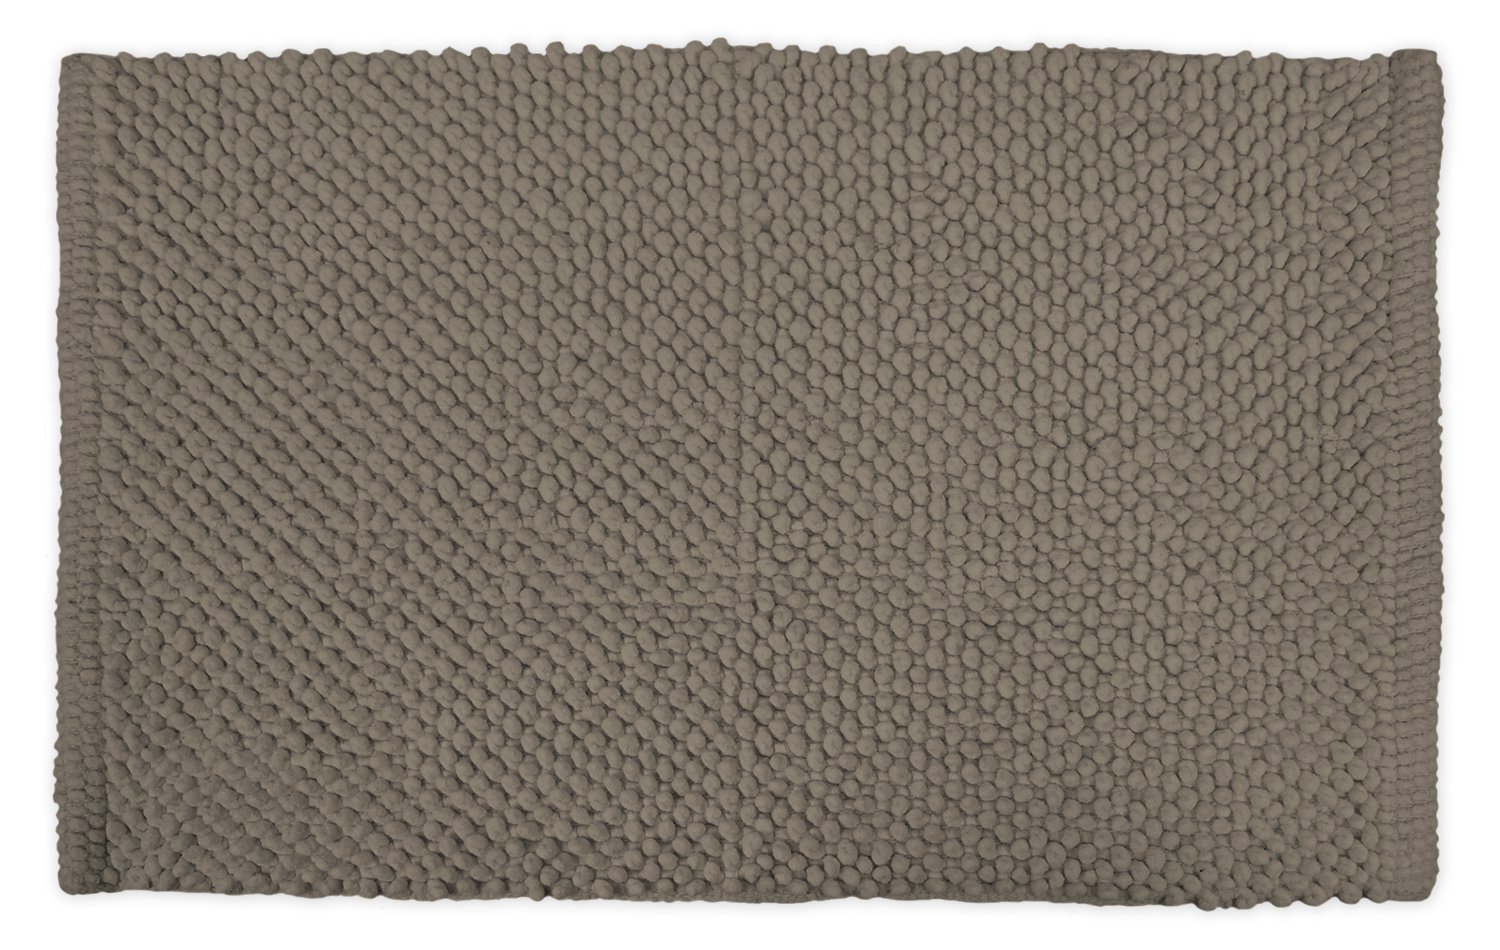 DII Ultra Soft Plush Spa Cotton Pebble Absorbent Chenille Bath Mat Place in Front of Shower, Vanity, Bath Tub, Sink, and Toilet, 21 x 34'' - Cool Brown